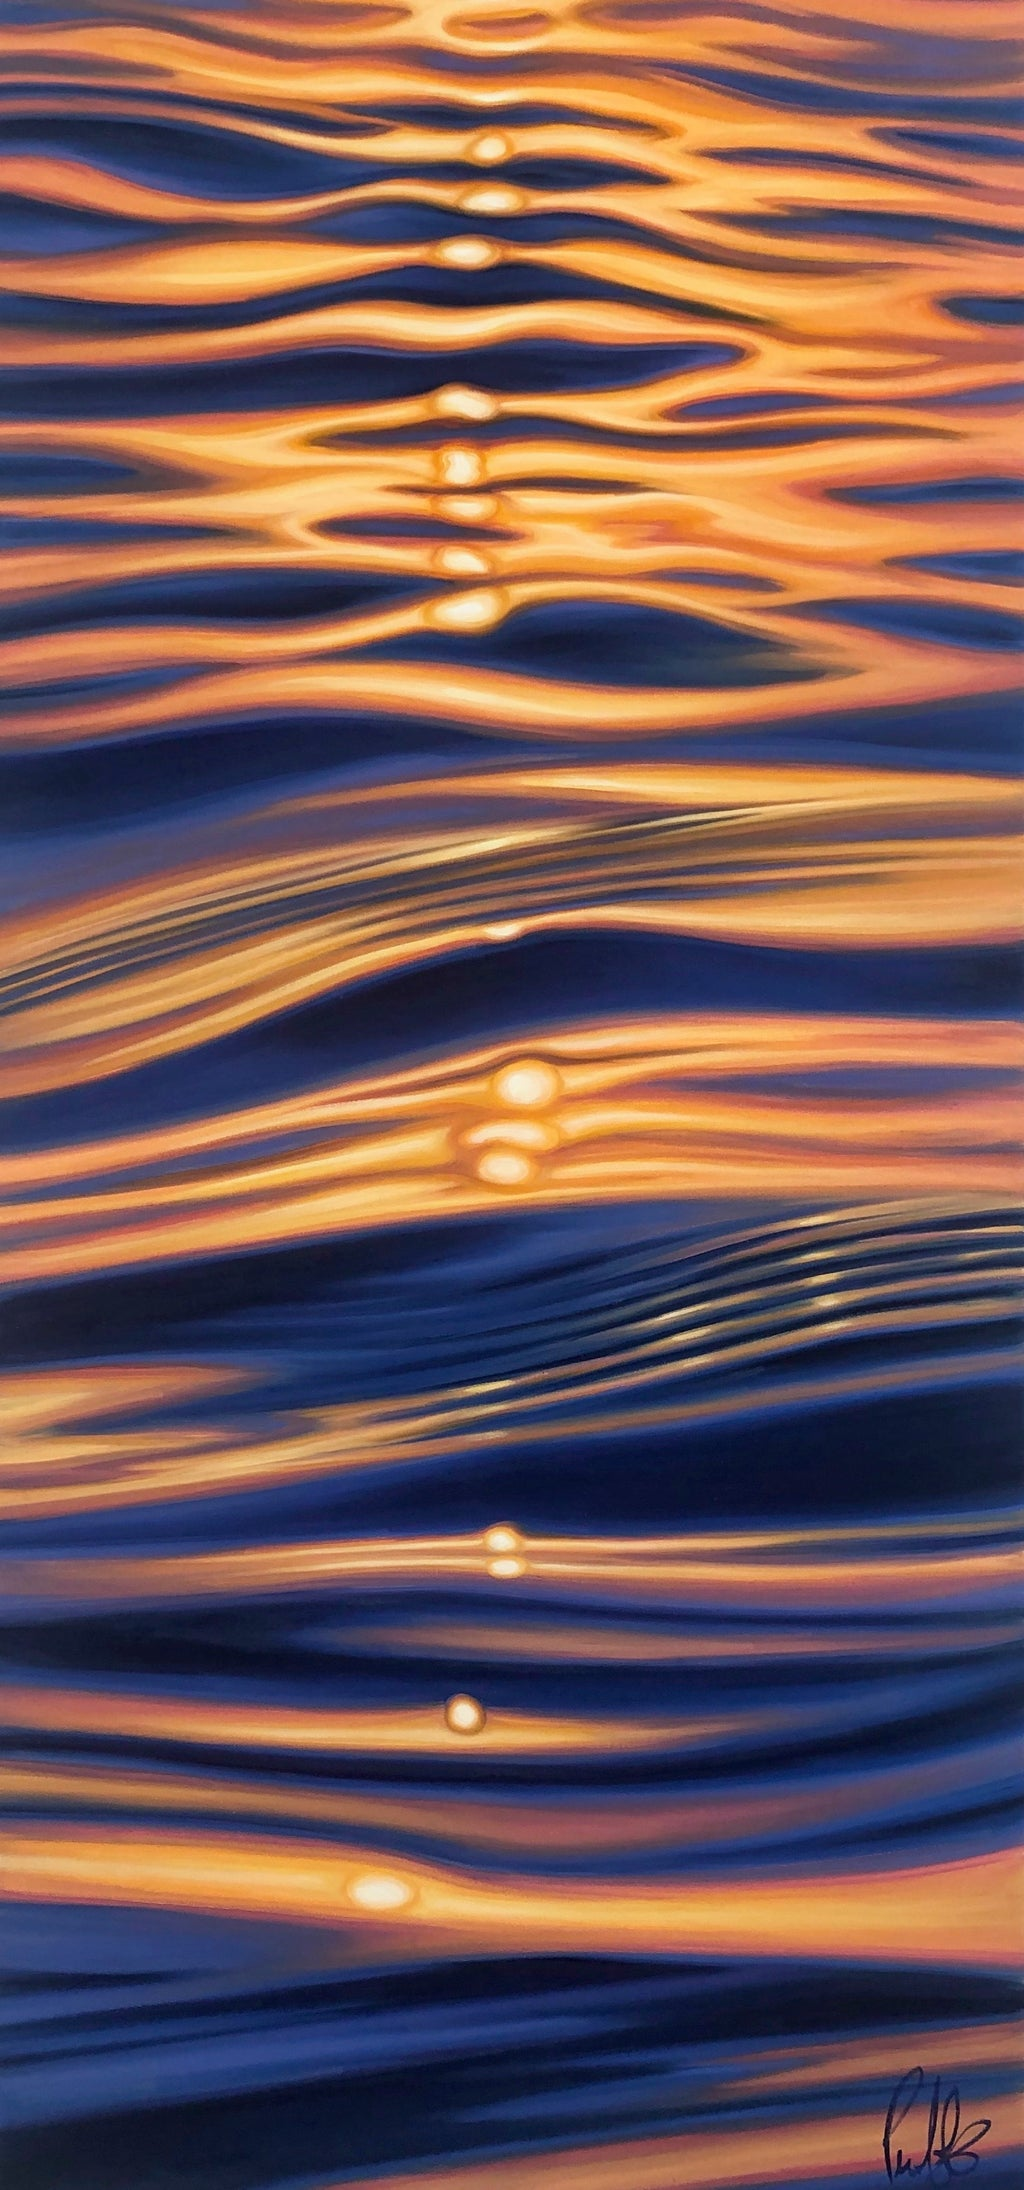 Glassy Golden Ripples of Light